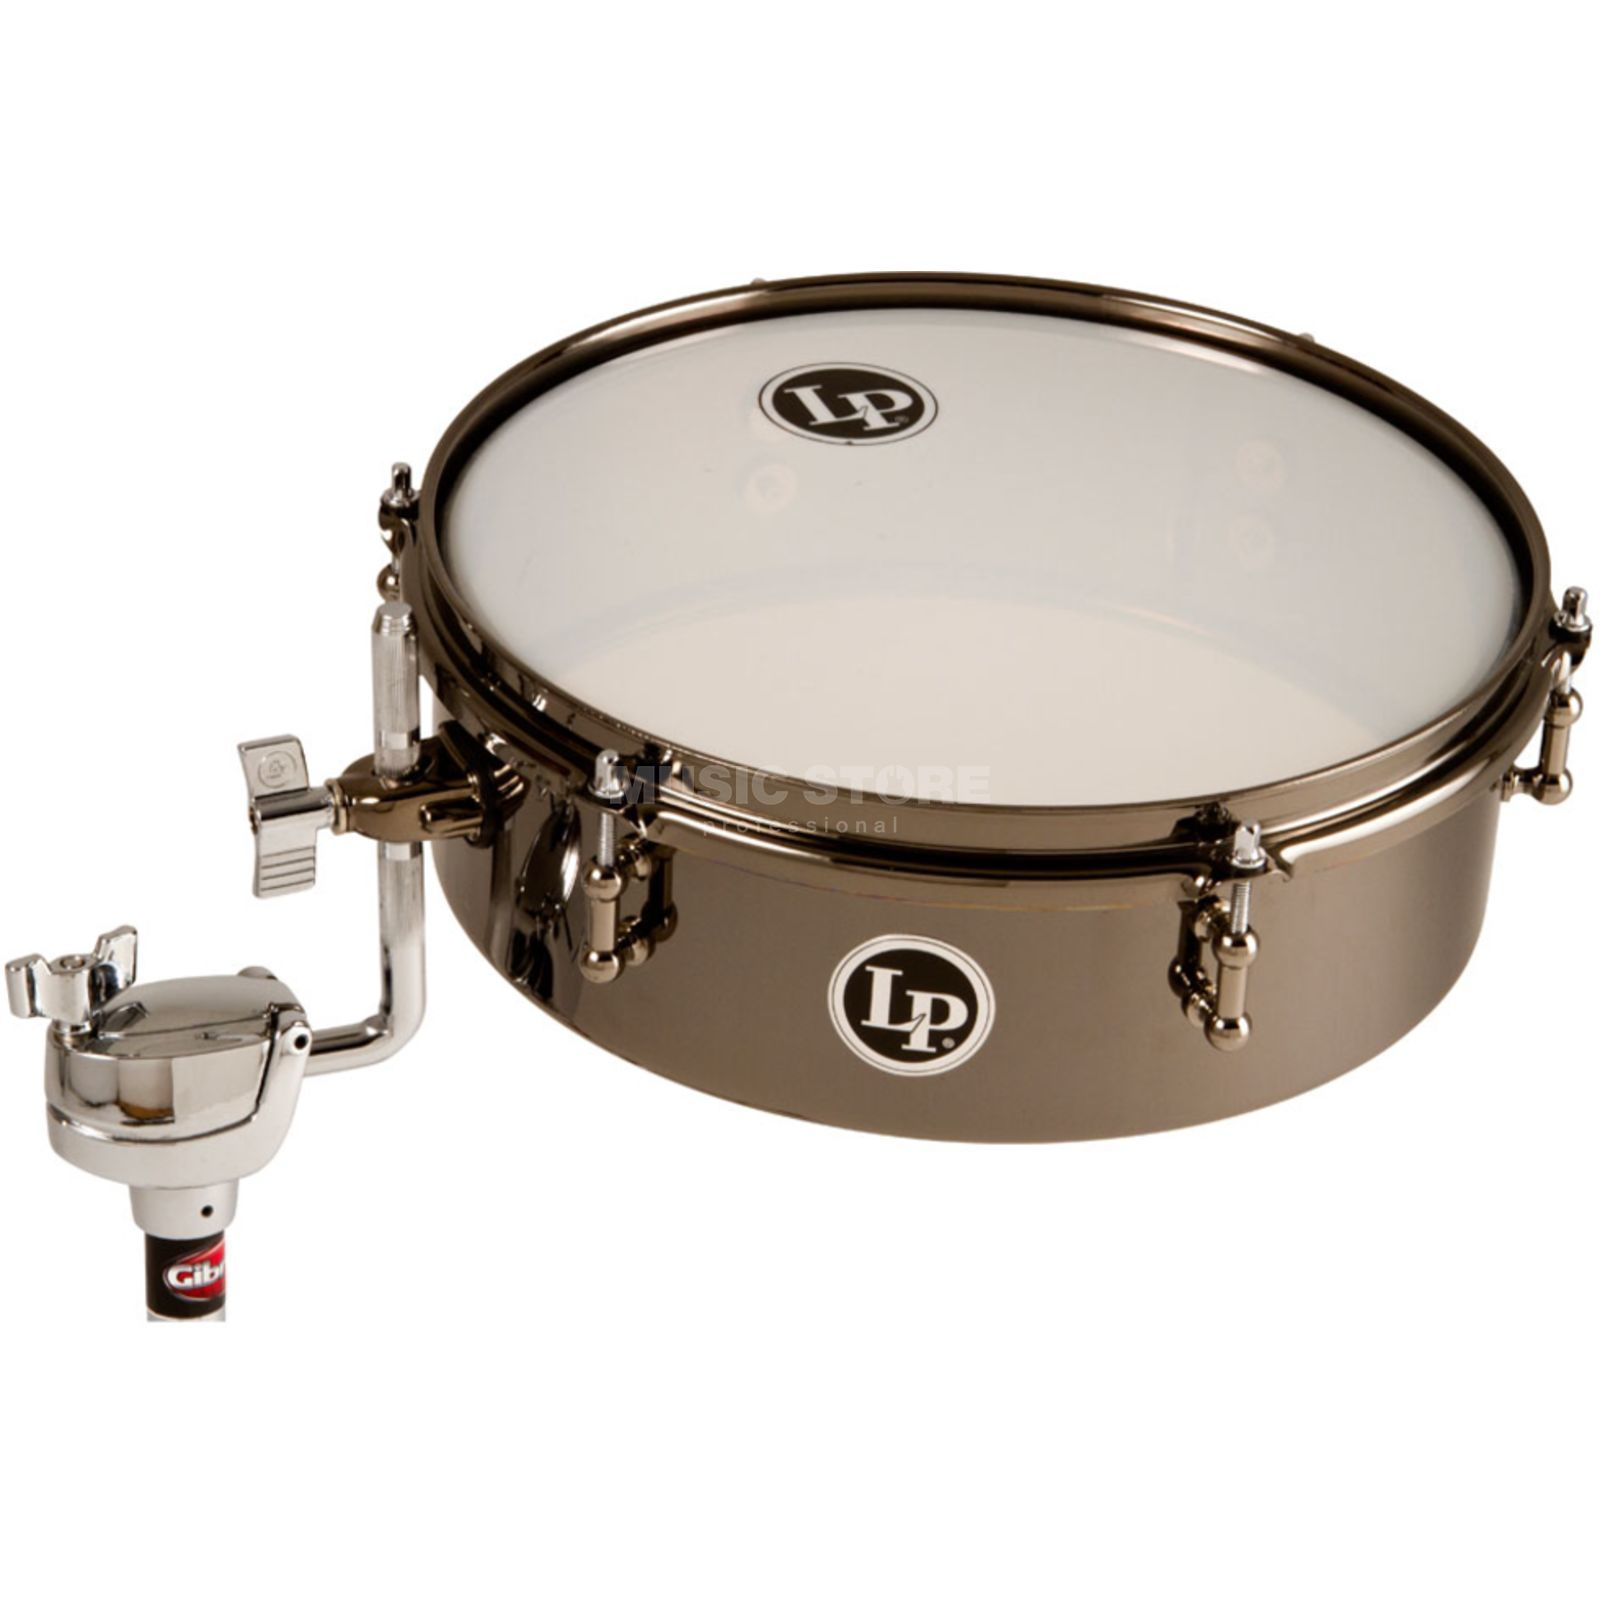 "Latin Percussion DrumSet Timbale LP812-BN, 12""x4"", Black Nickel Produktbillede"